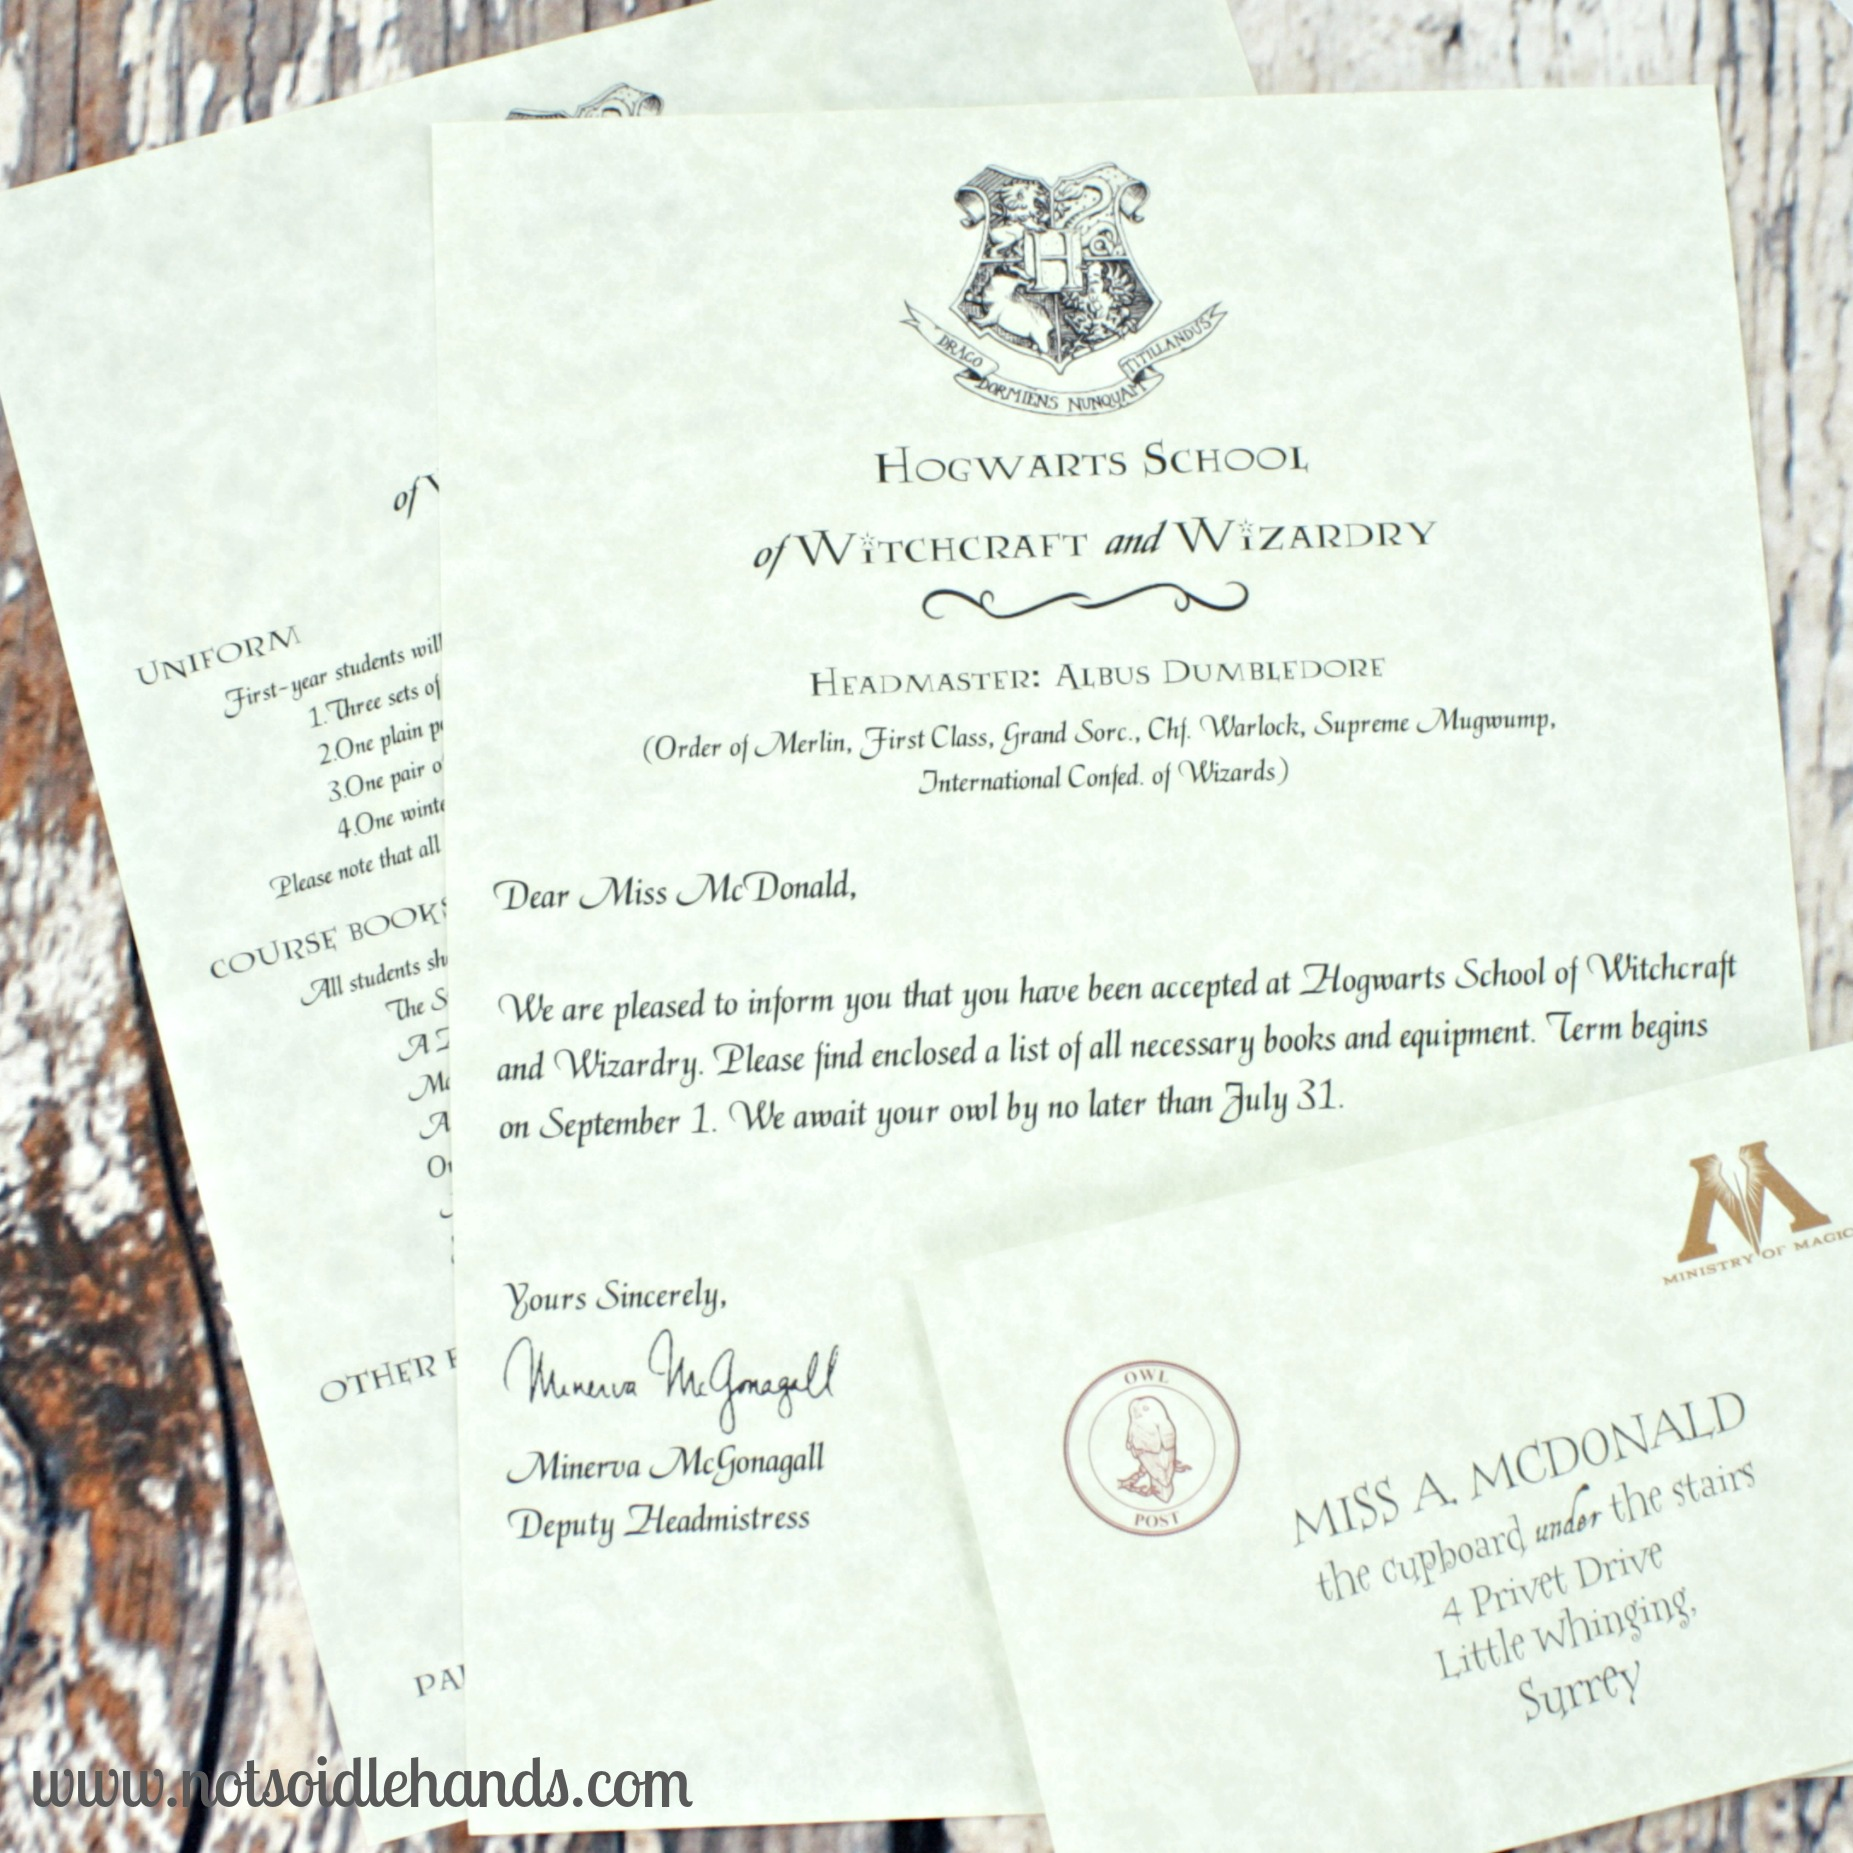 hogwarts letter birthday card ; hogwarts-acceptance-letter-birthday-invitation-harry-potter-party-2